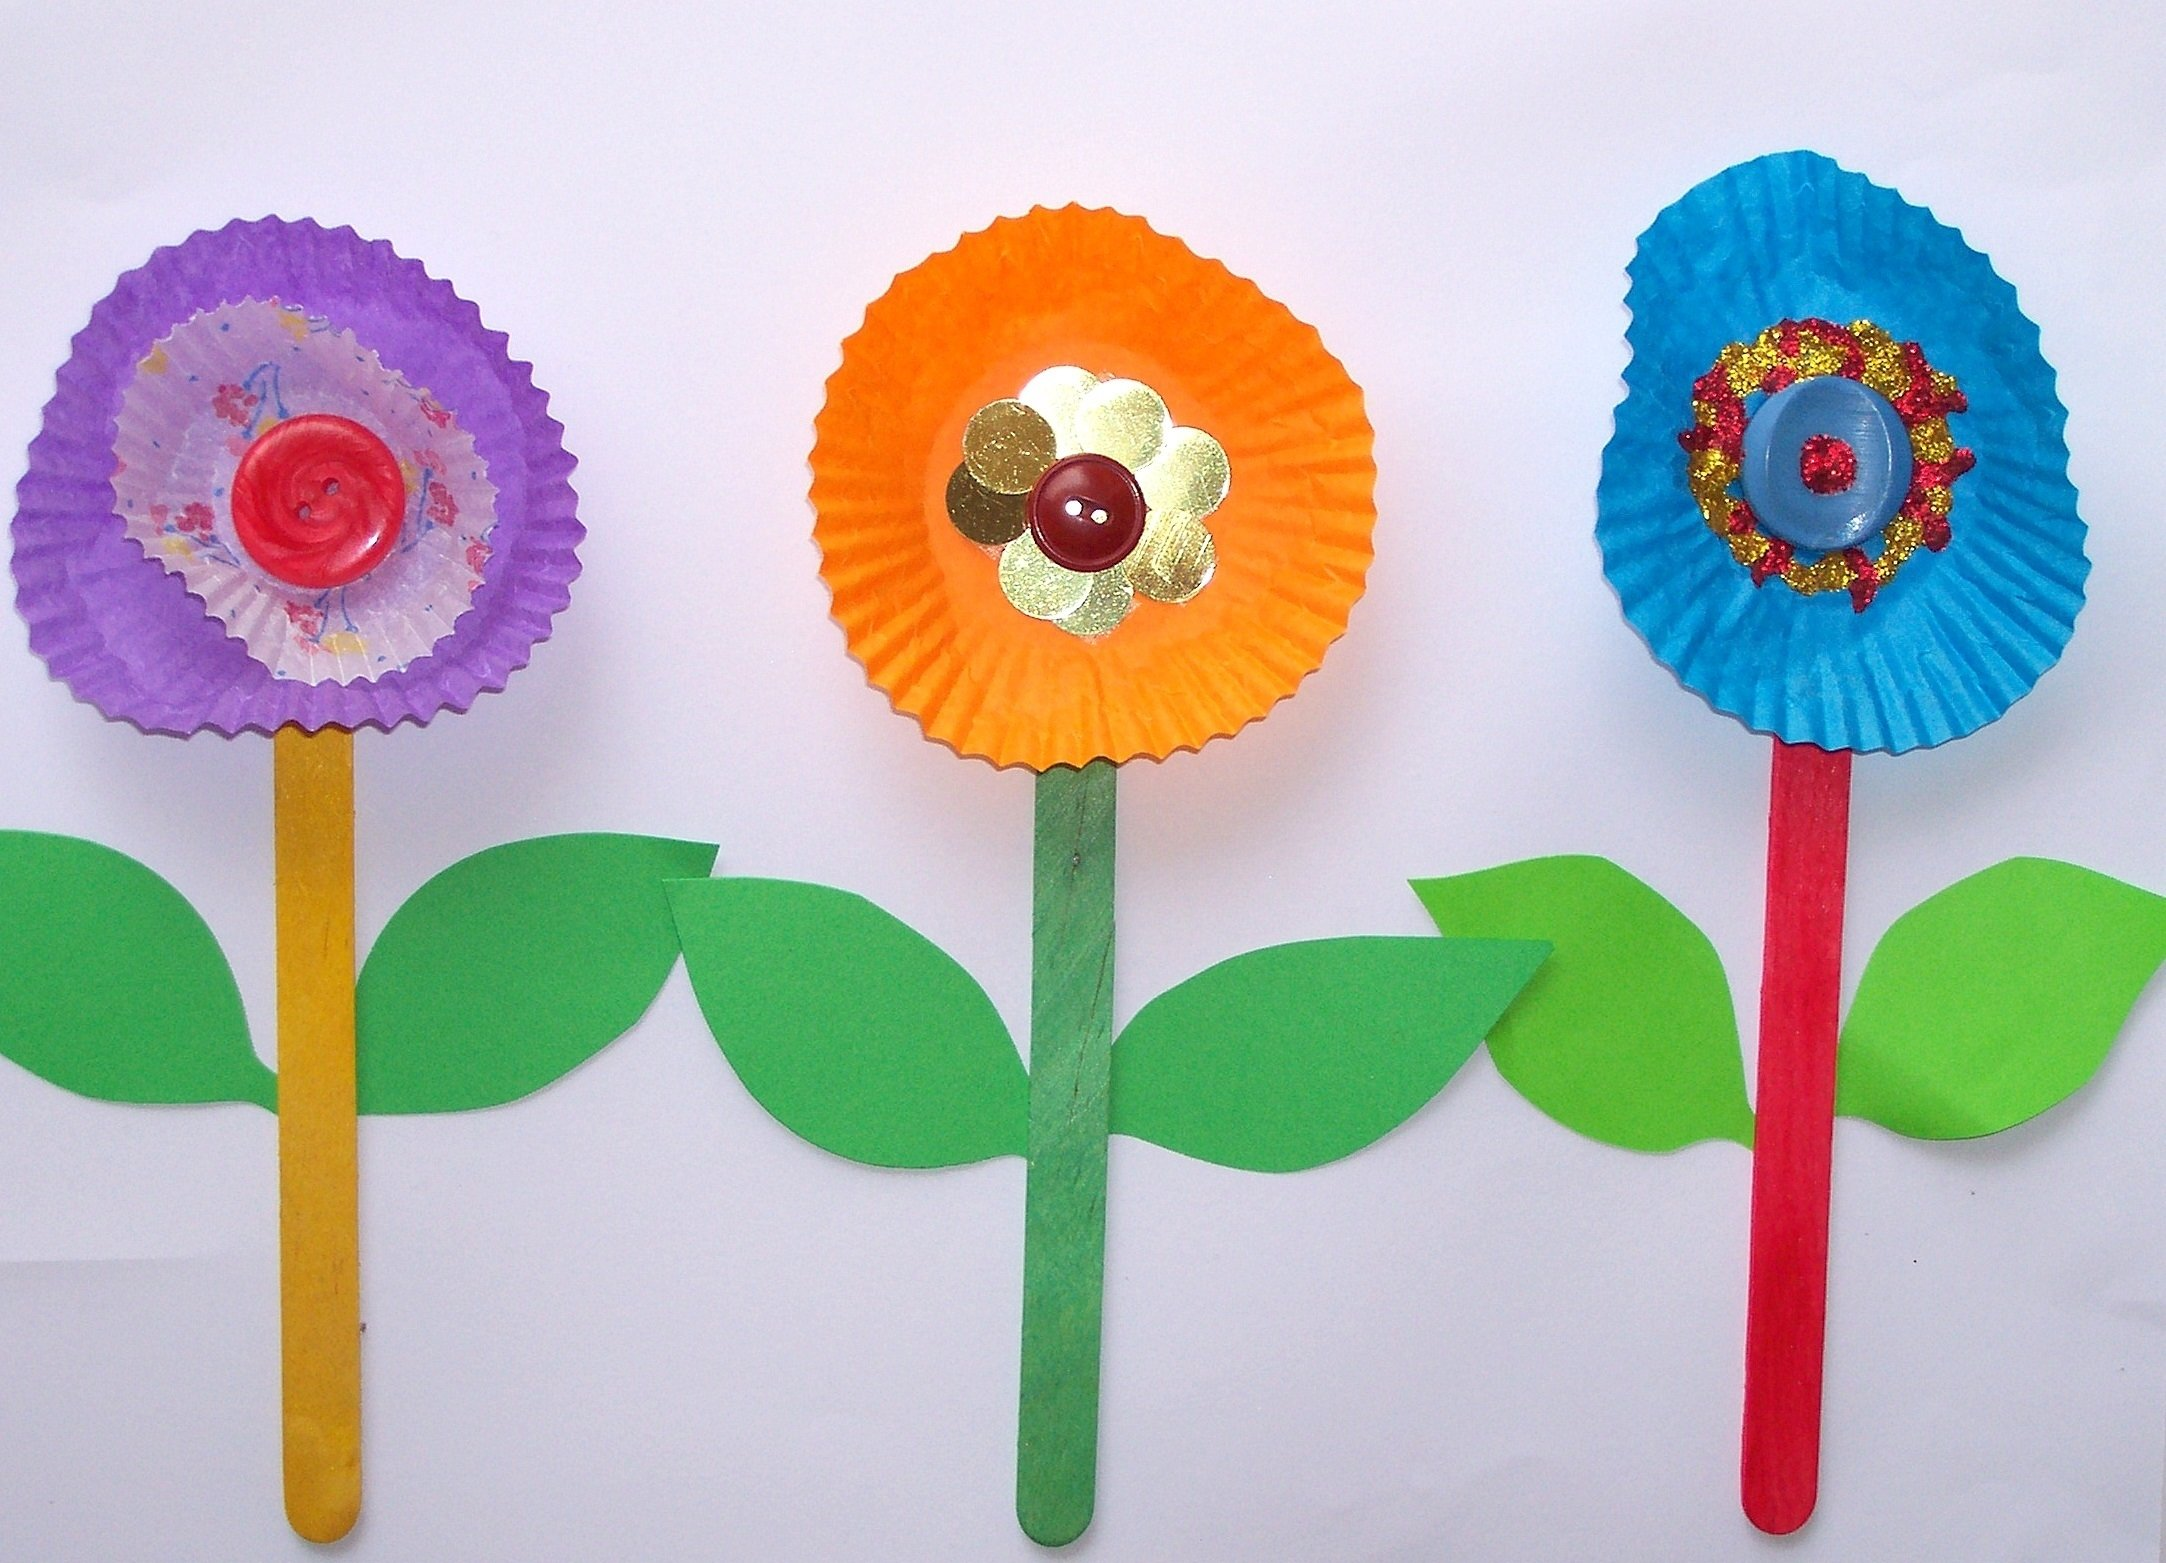 10 Fashionable Spring Arts And Crafts Ideas easy spring kids crafts homi craft tierra este 76089 1 2020